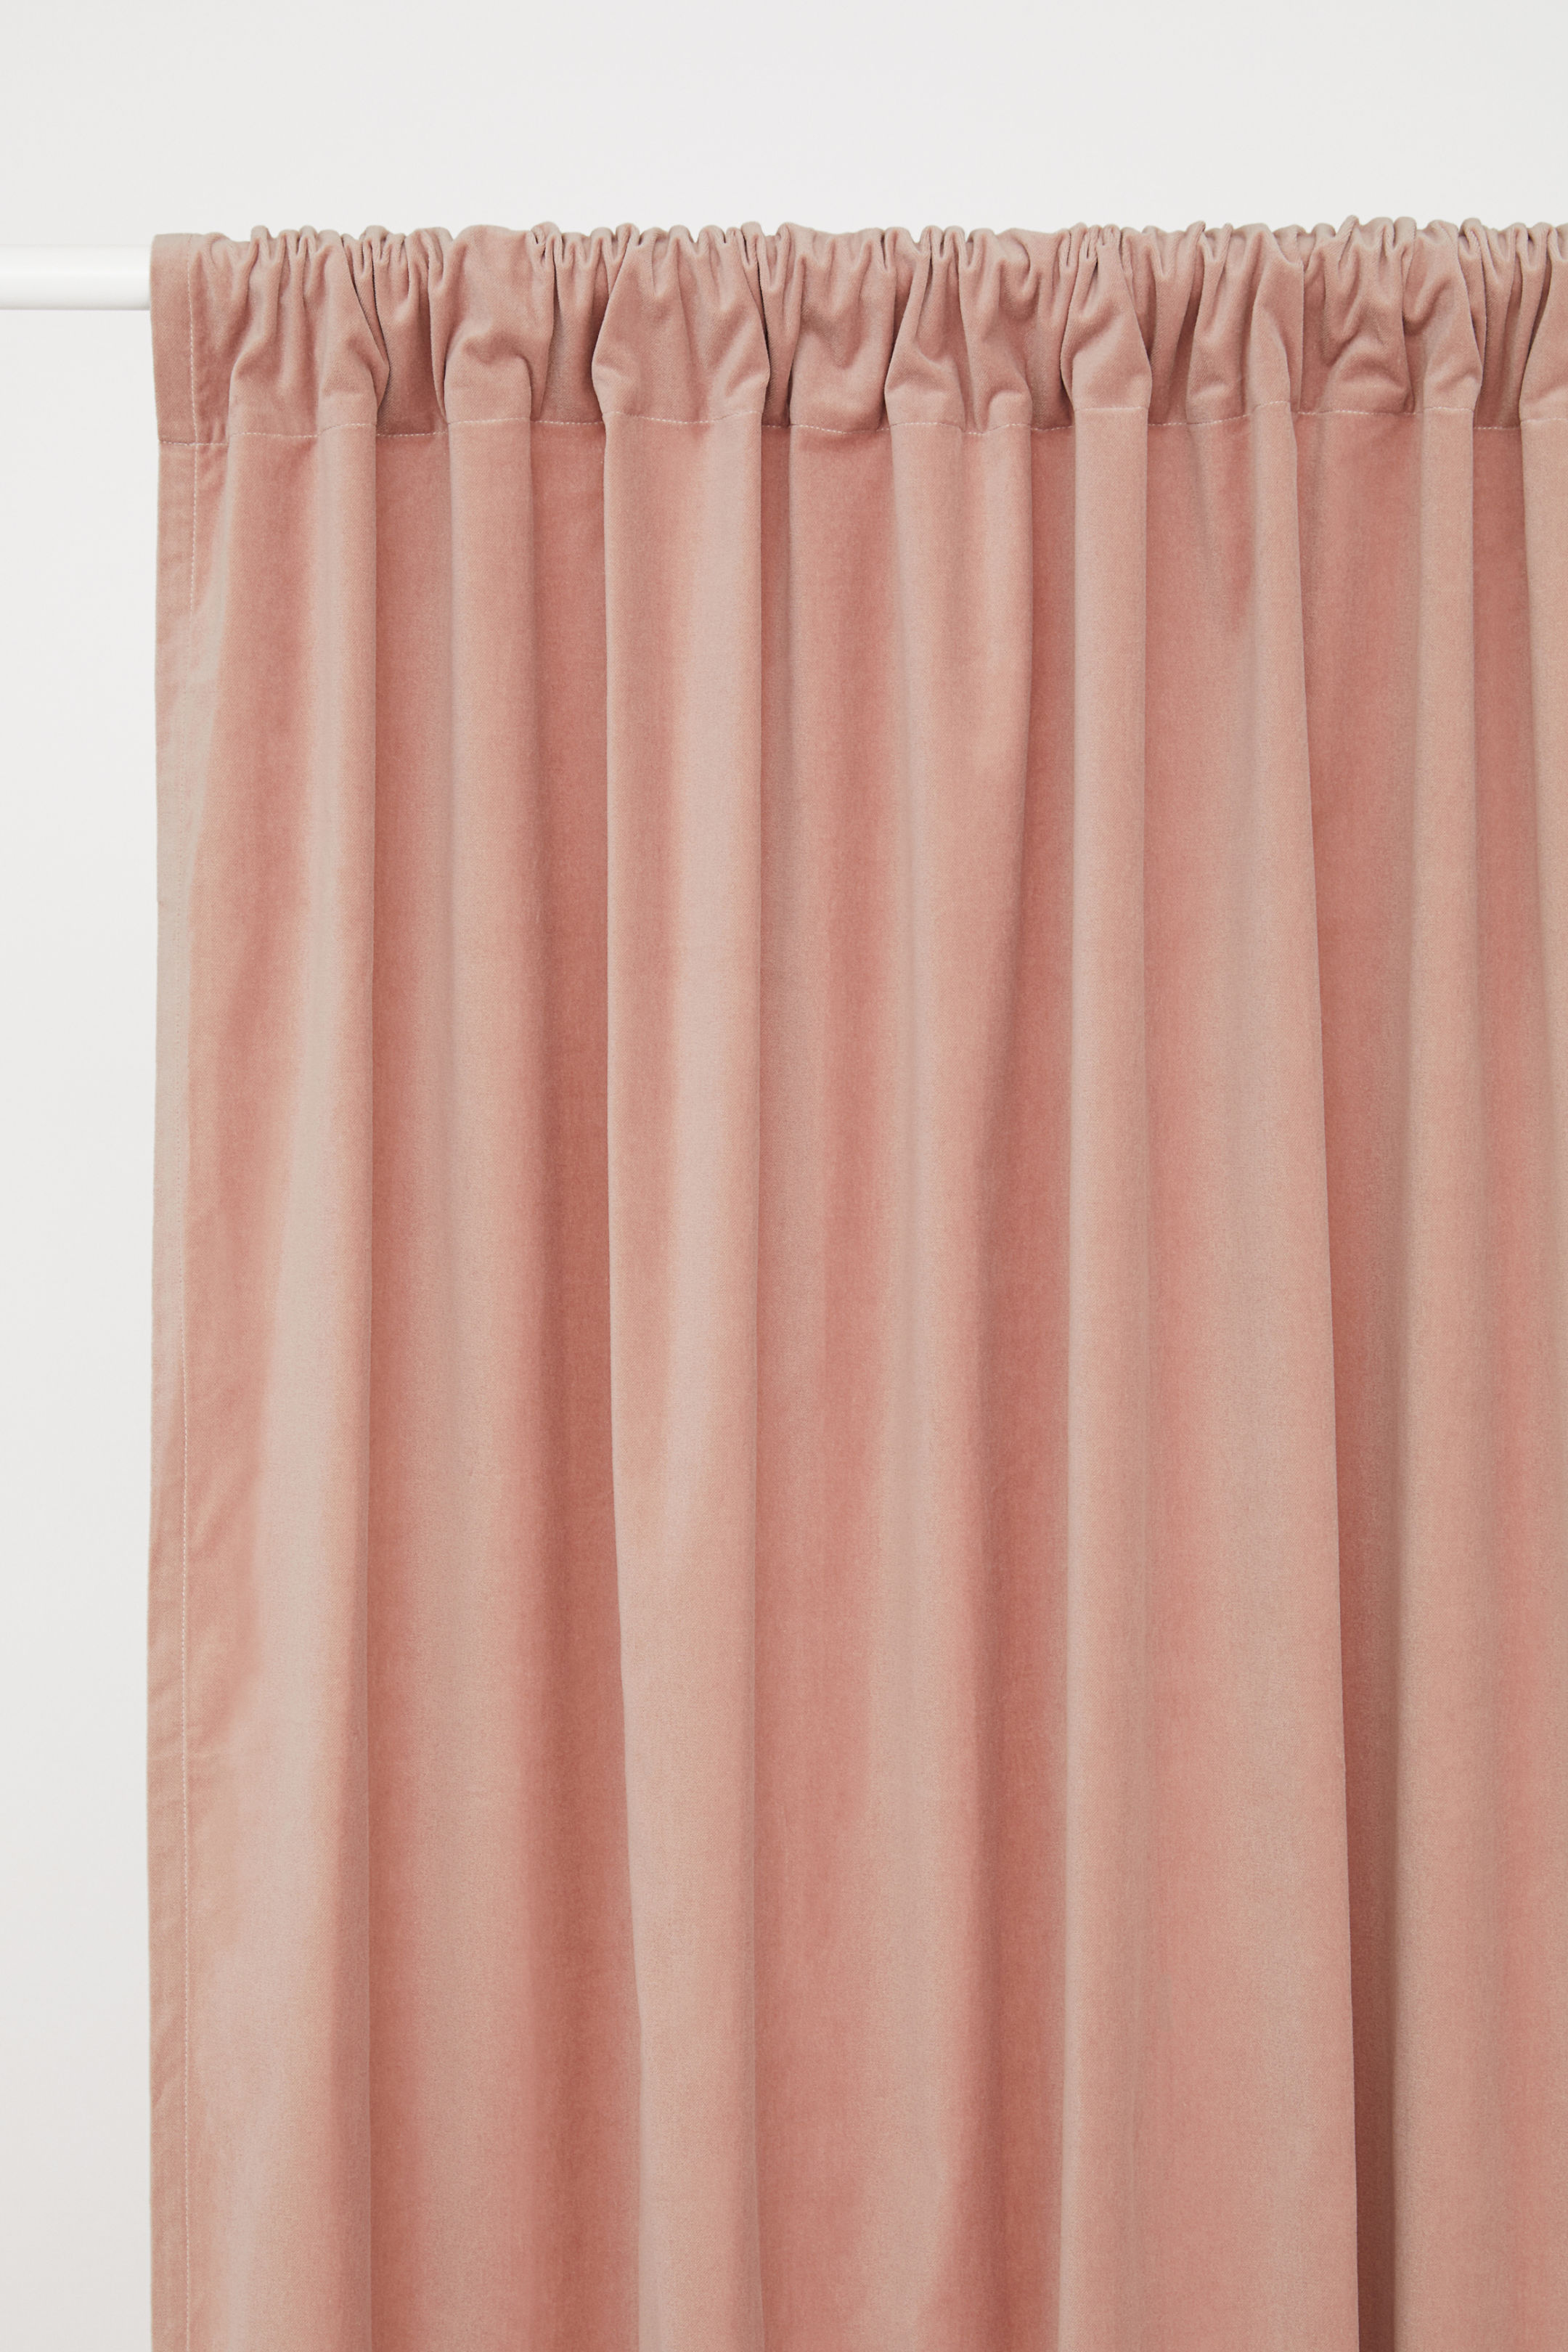 modern dining room look - budget velvet curtain panels in blush pink